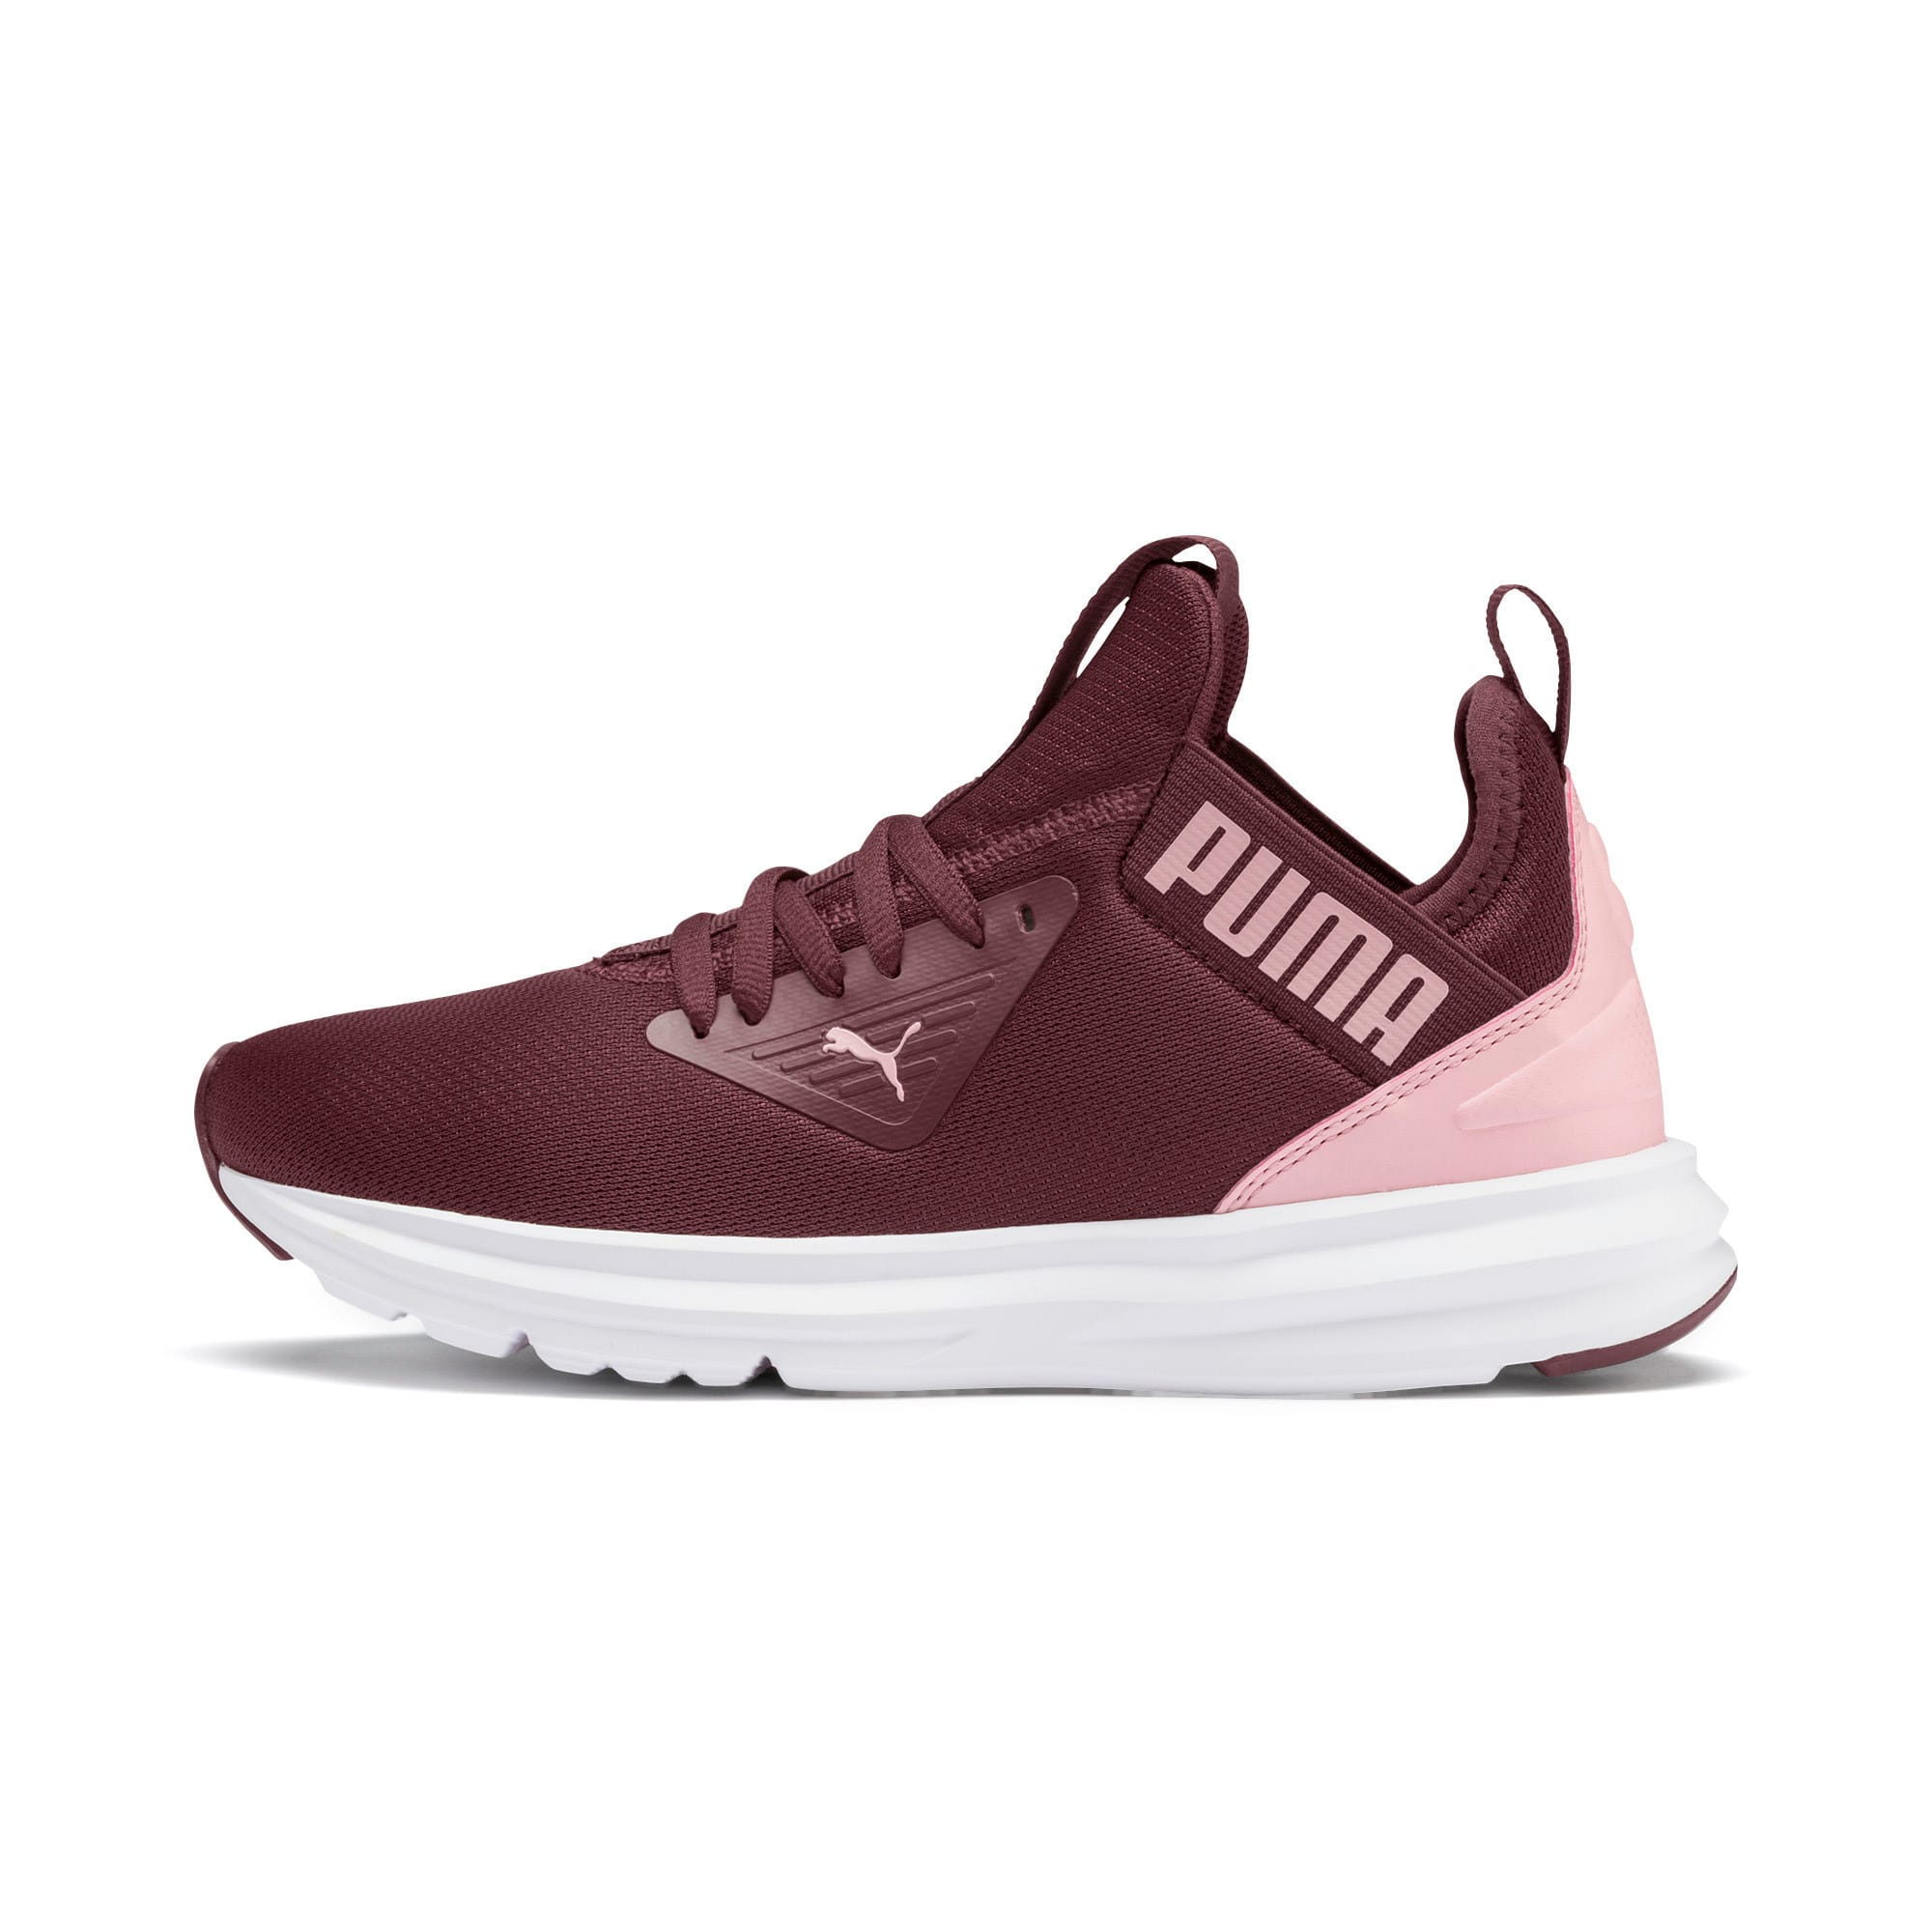 Thumbnail 1 of Enzo Beta Shine Sneakers JR, Vineyard Wine-Bridal Rose, medium